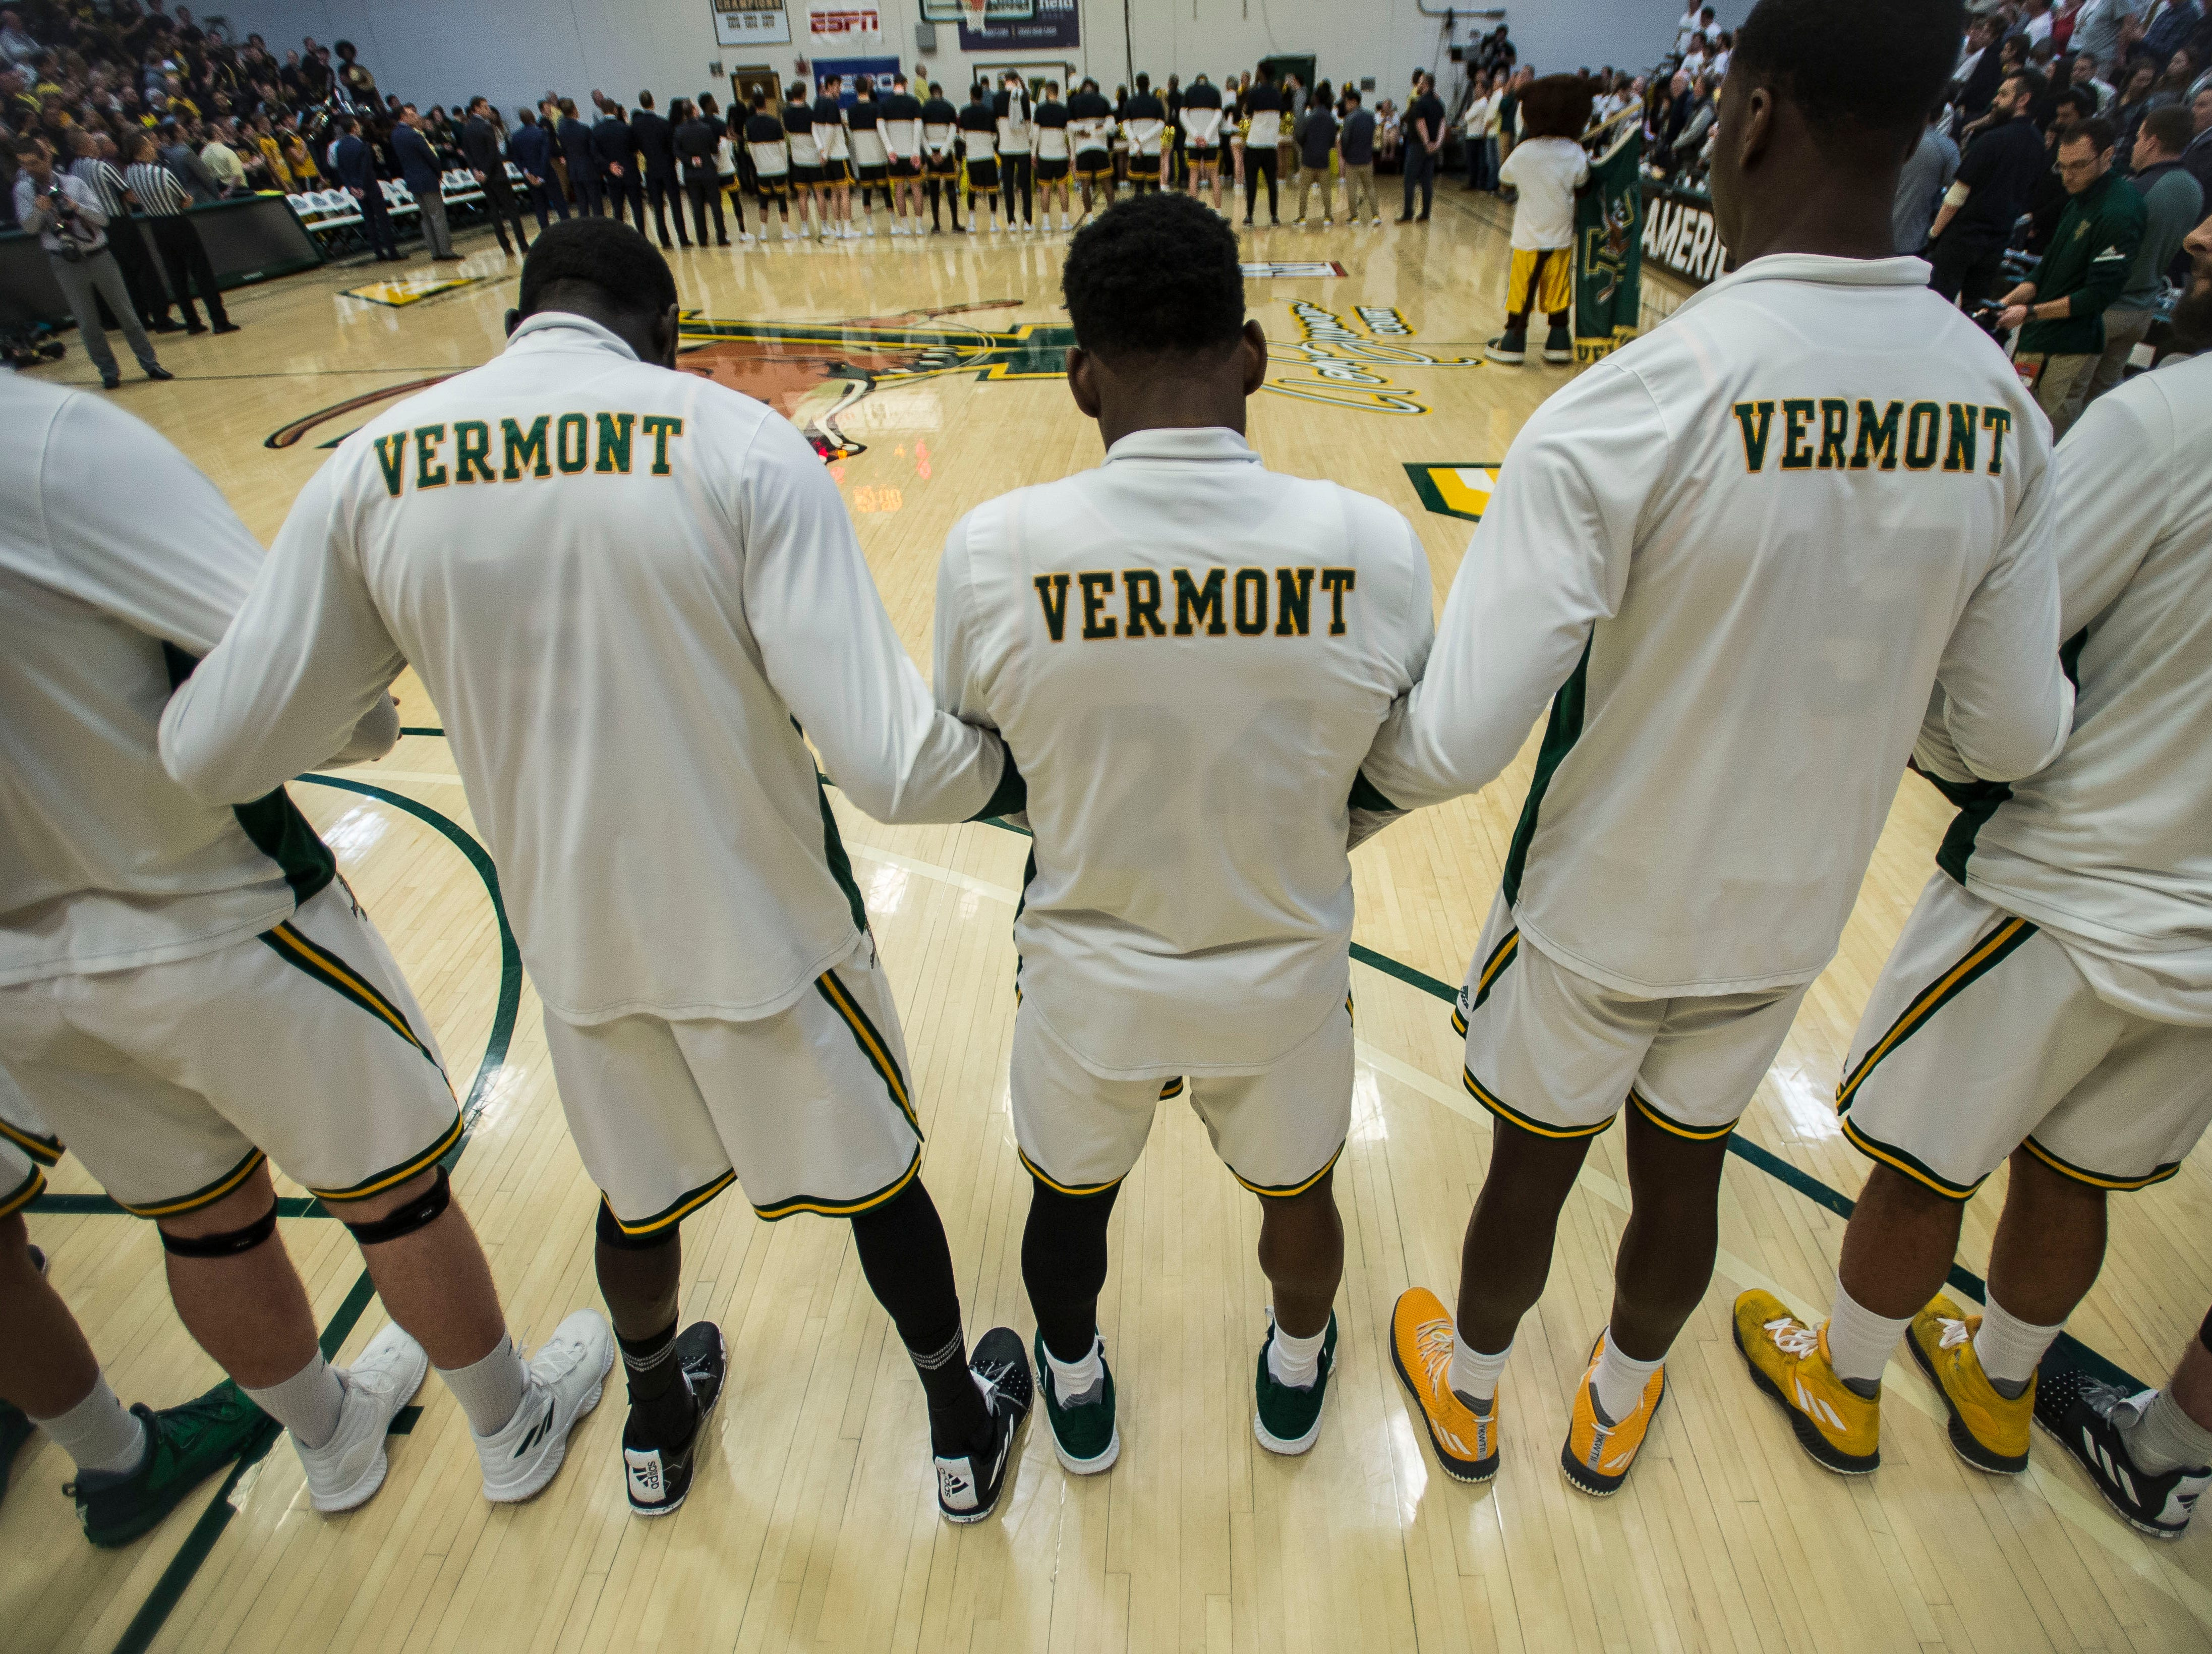 UVM Men's basketball team locks arms during the playing of the National Anthem before the start of the America East Championship in Burlington, Vt., on Saturday, March 16, 2019. UVM won, 66-49 and will head to the NCAA March Madness Tournament.